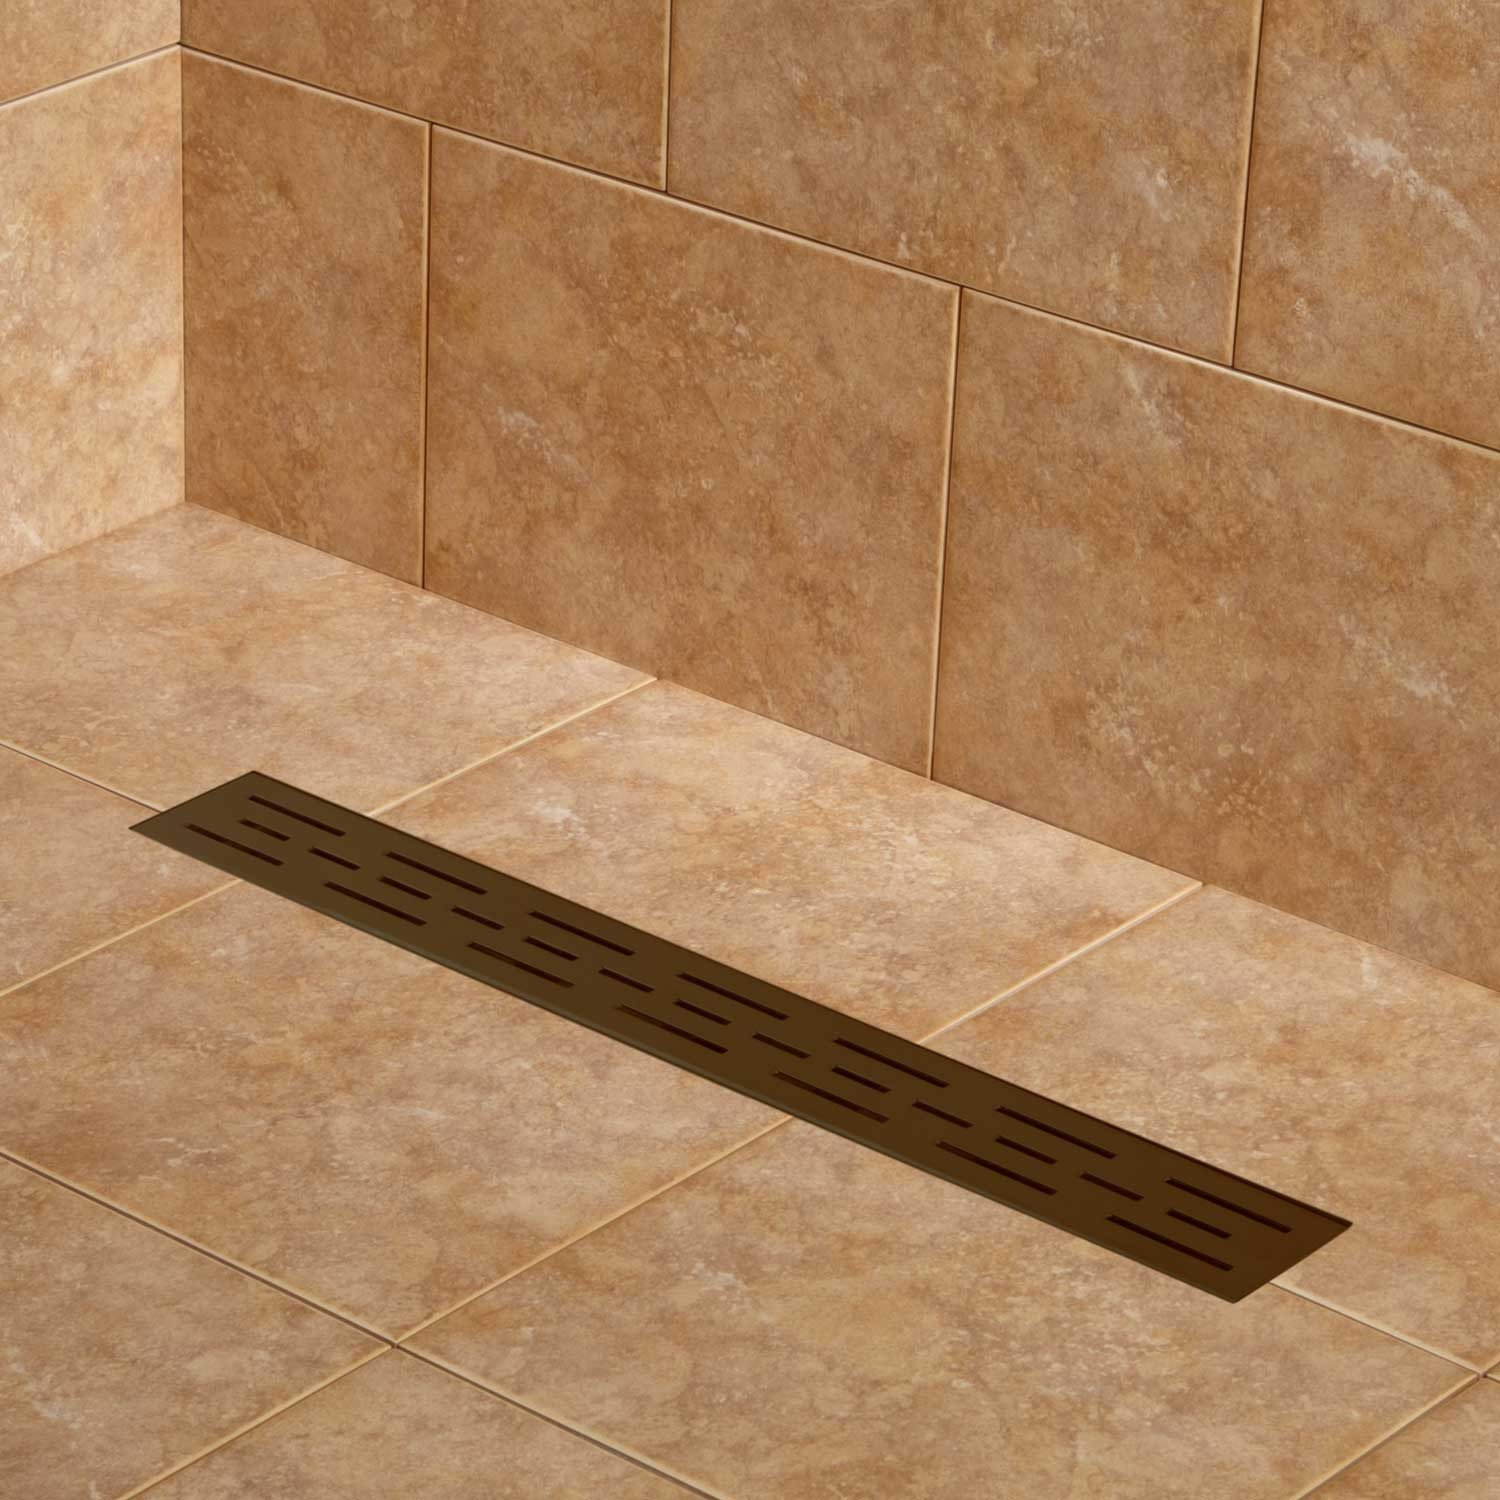 Naiture 32'' Stainless Steel Linear Shower Floor Drain Without Drain Flange In Oil Rubbed Bronze Finish by SH